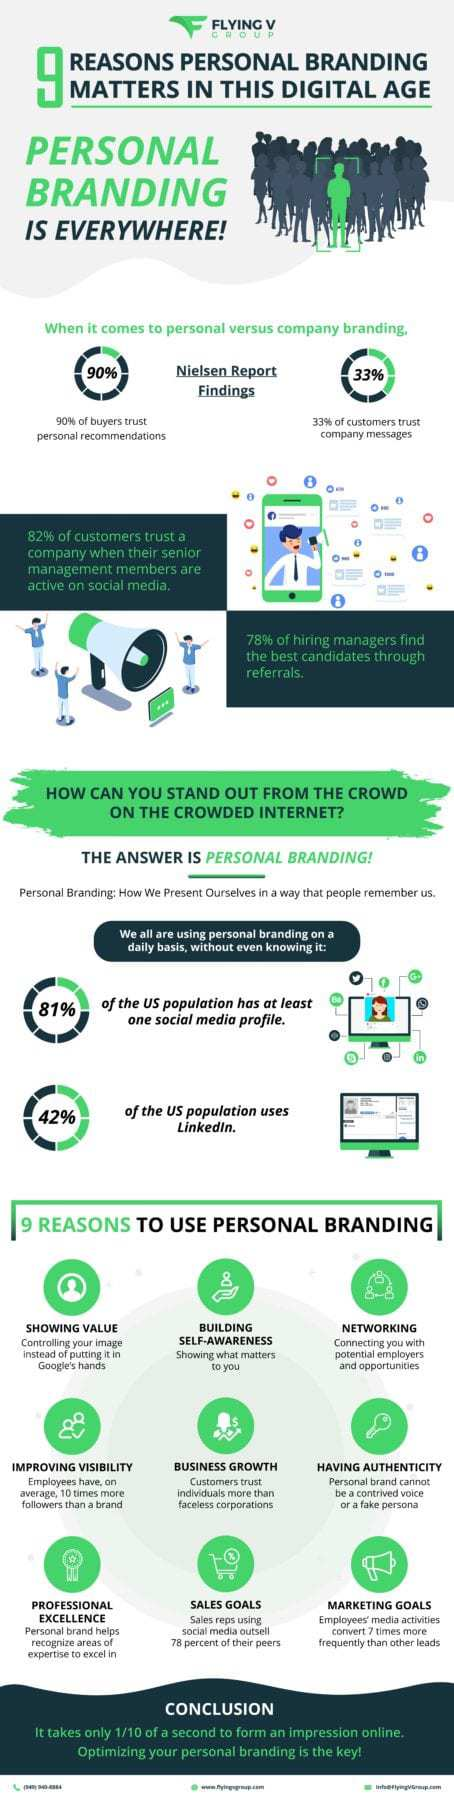 Learn more about why personal branding matters and makes all the difference, in this great infographic.